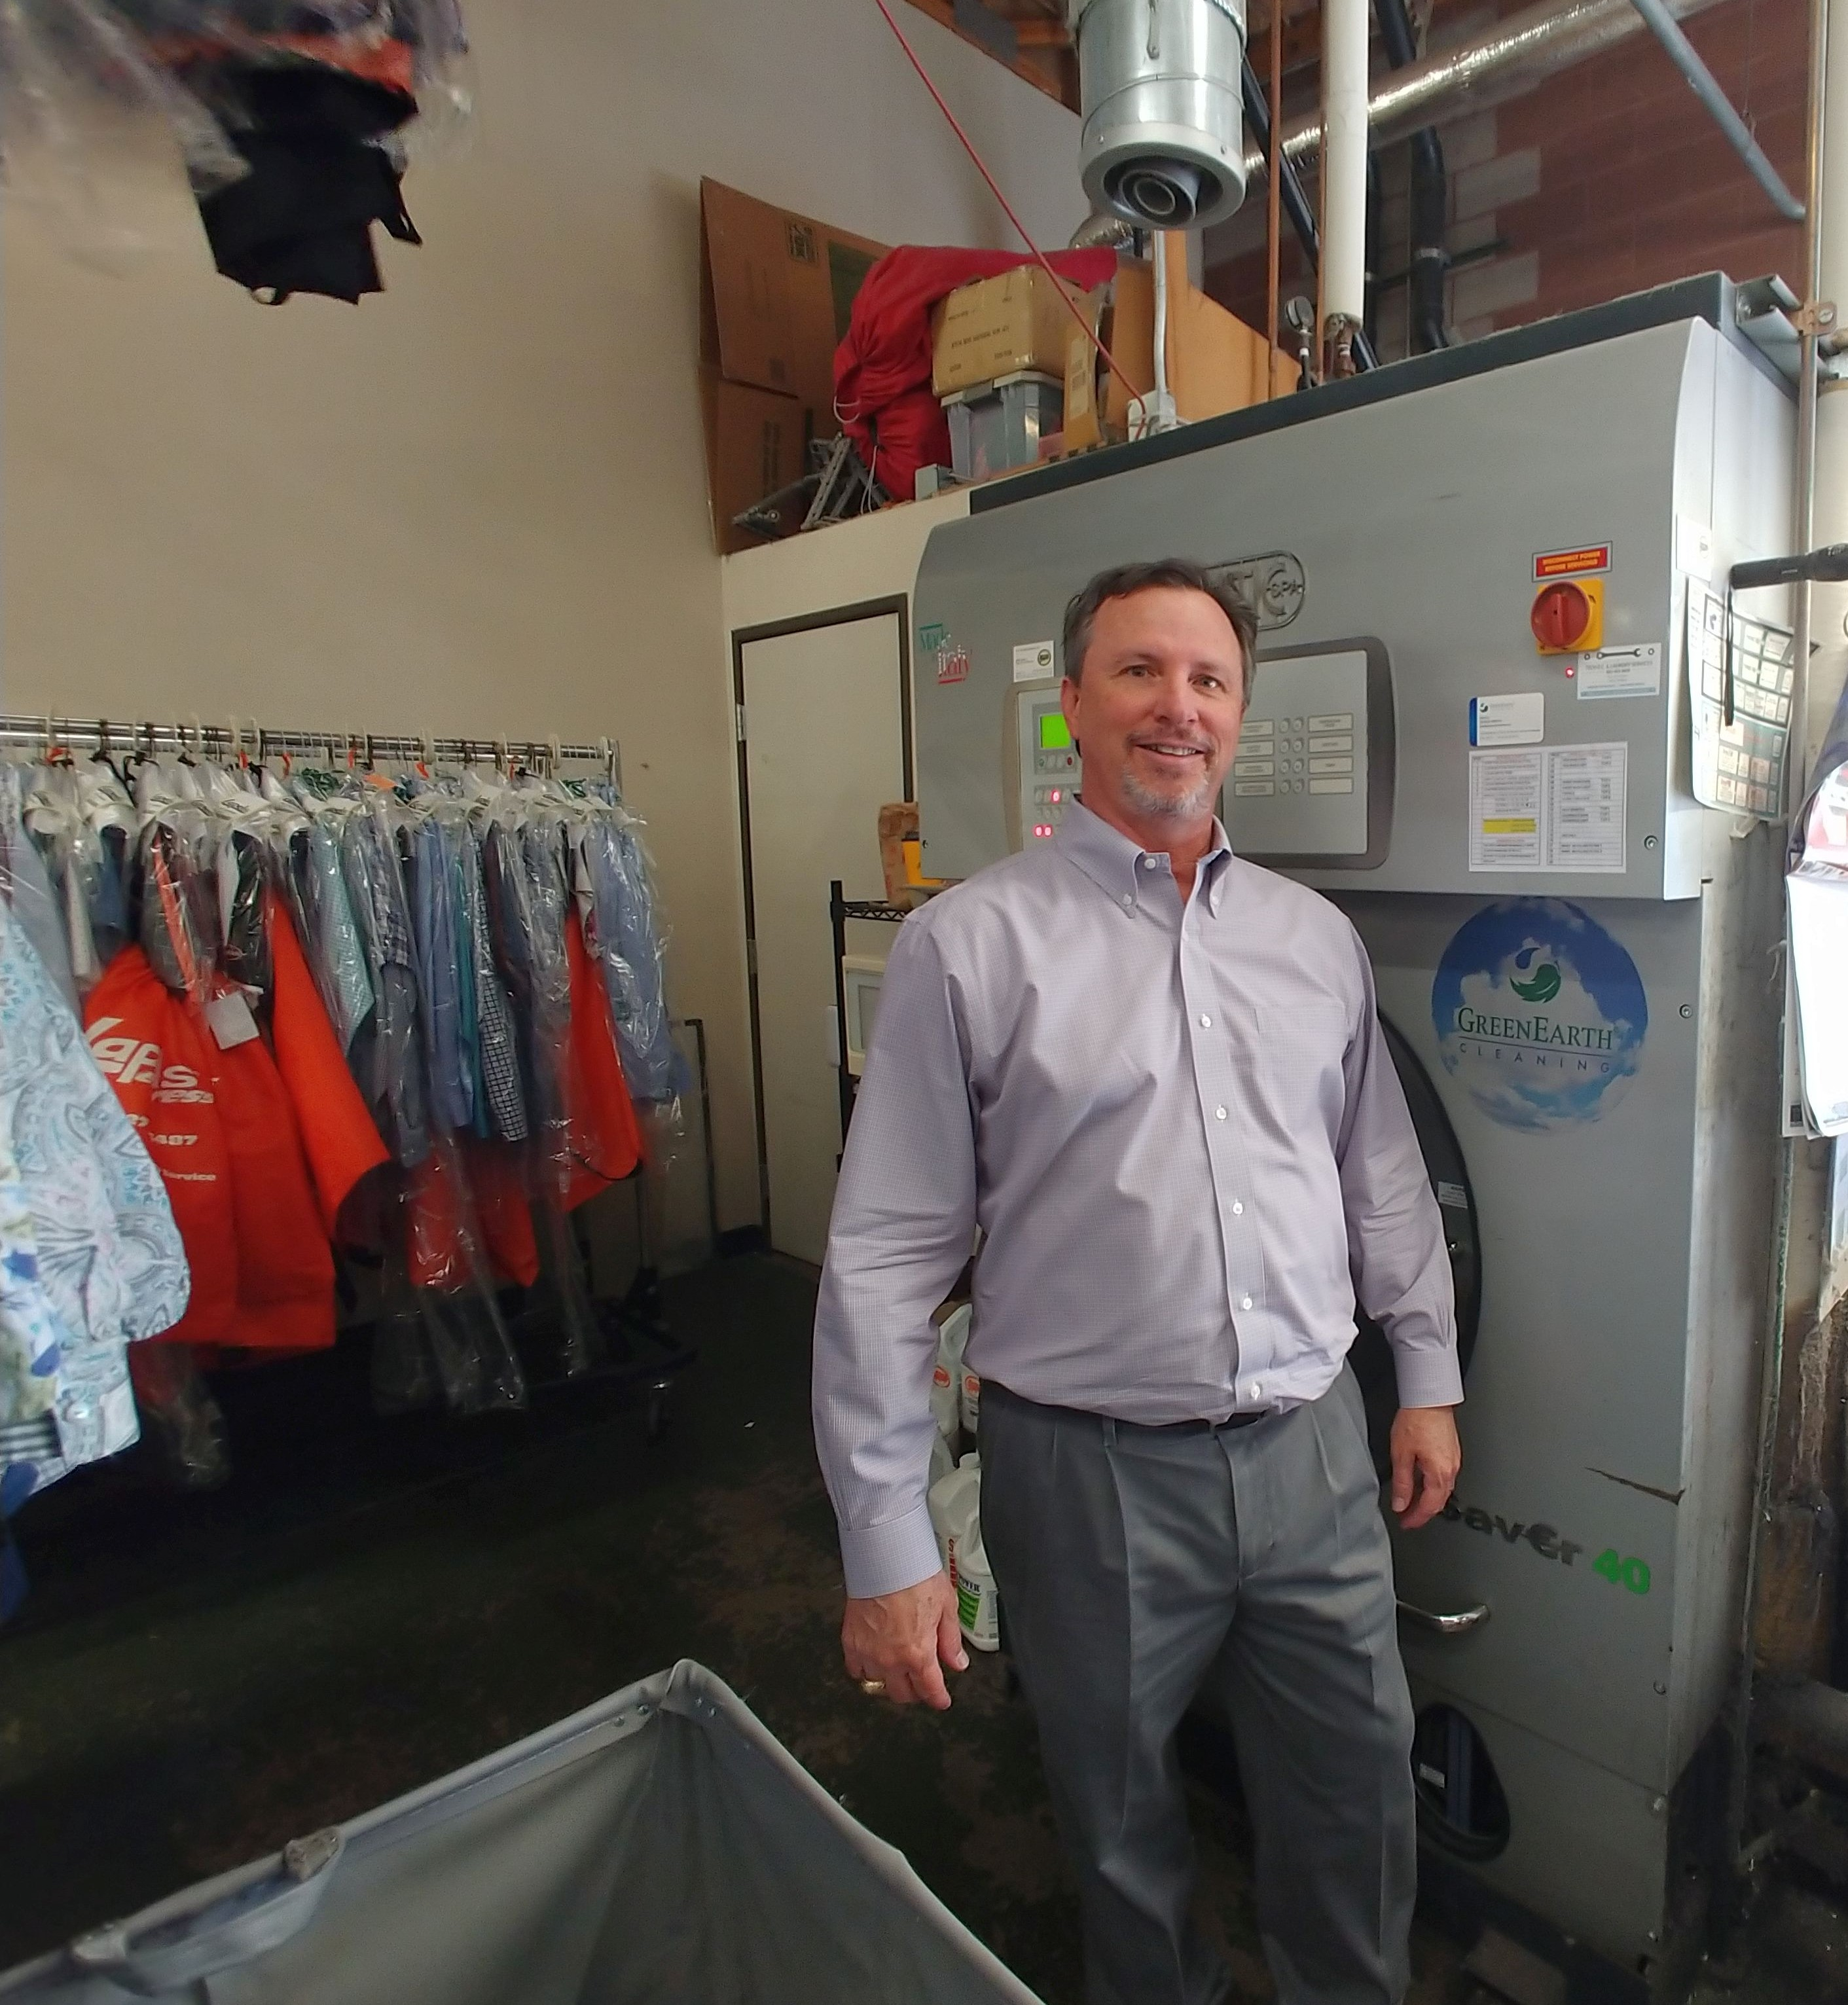 The Future of Dry Cleaning grows in Greater Phoenix.  Lapels Dry Cleaning locations in Gilbert and Chandler switch over to GreenEarth